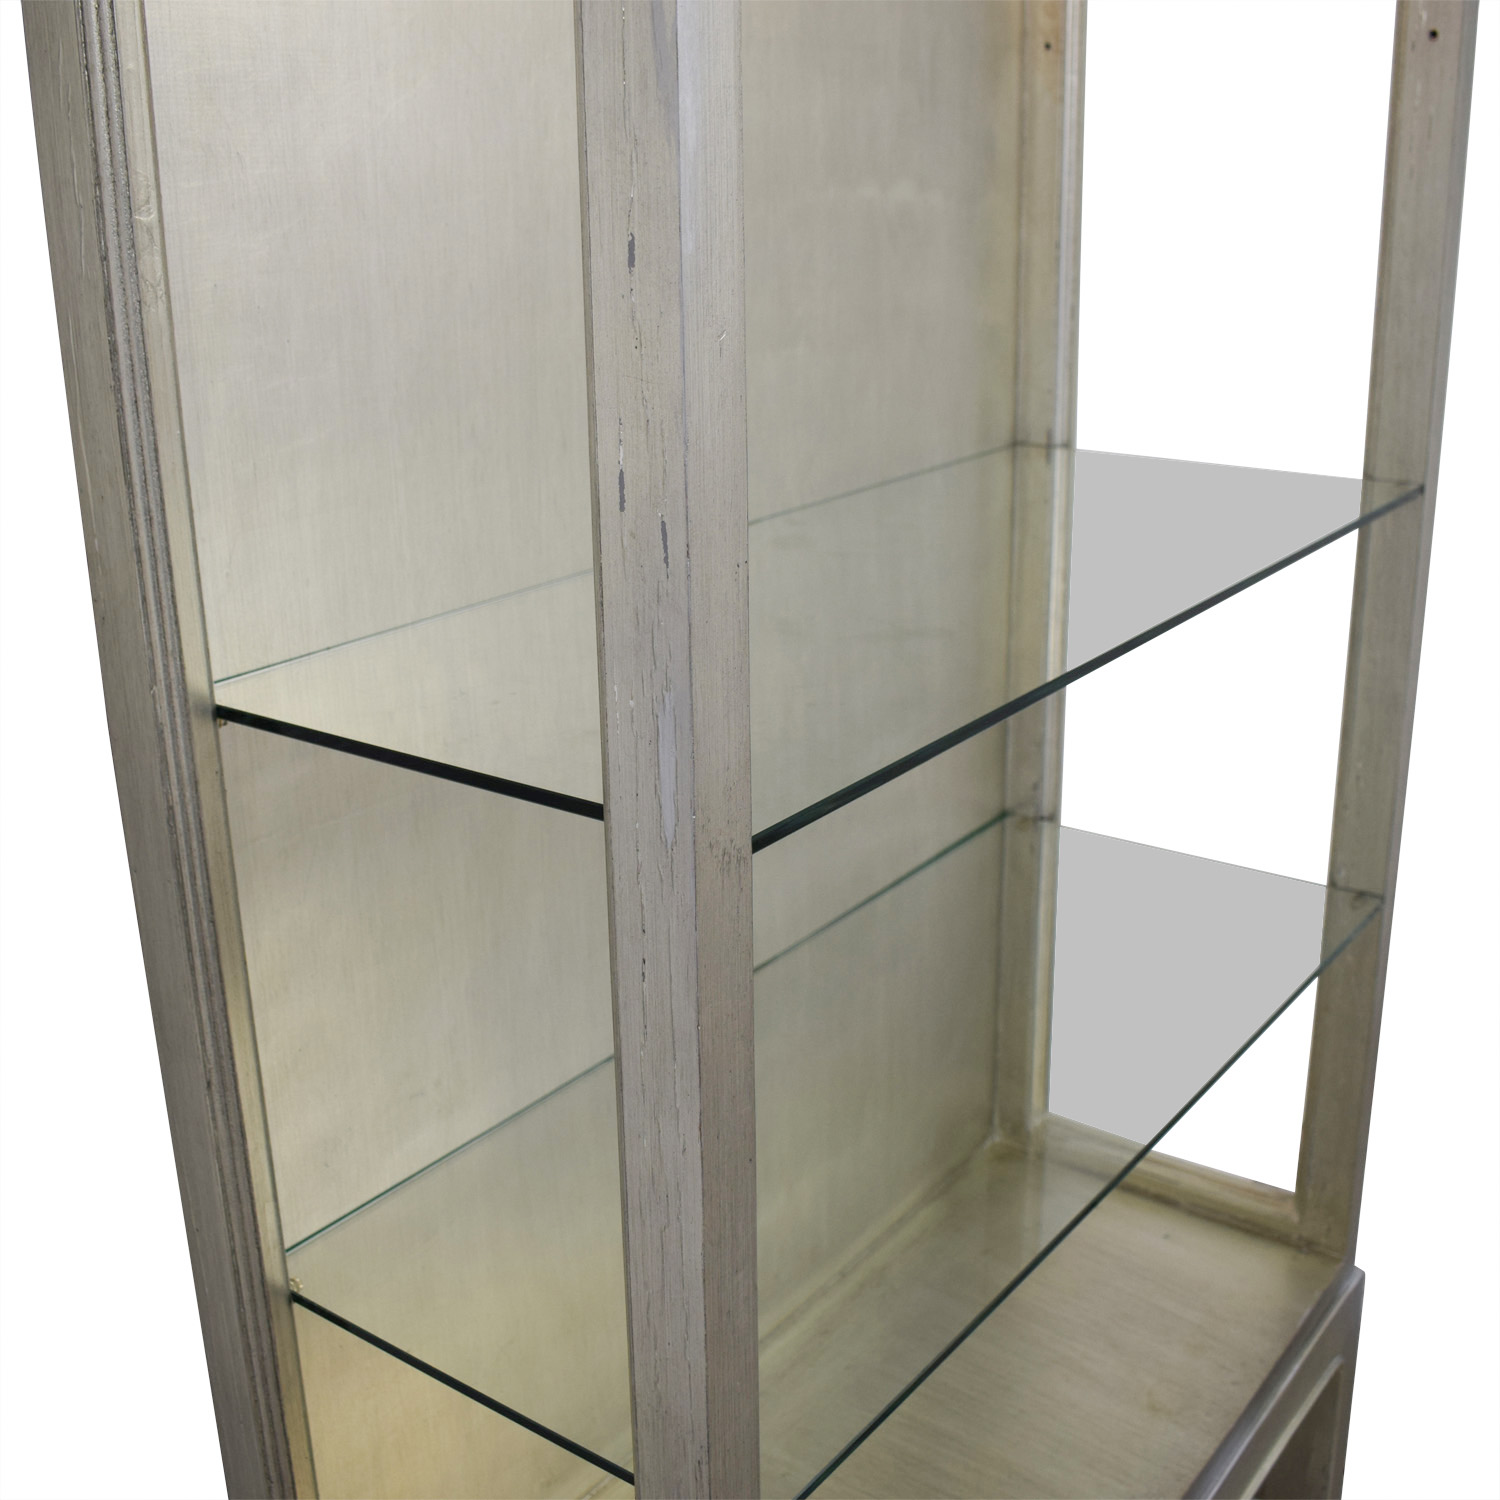 Horchow Silver and Glass Shelving Unit with Lights / Storage